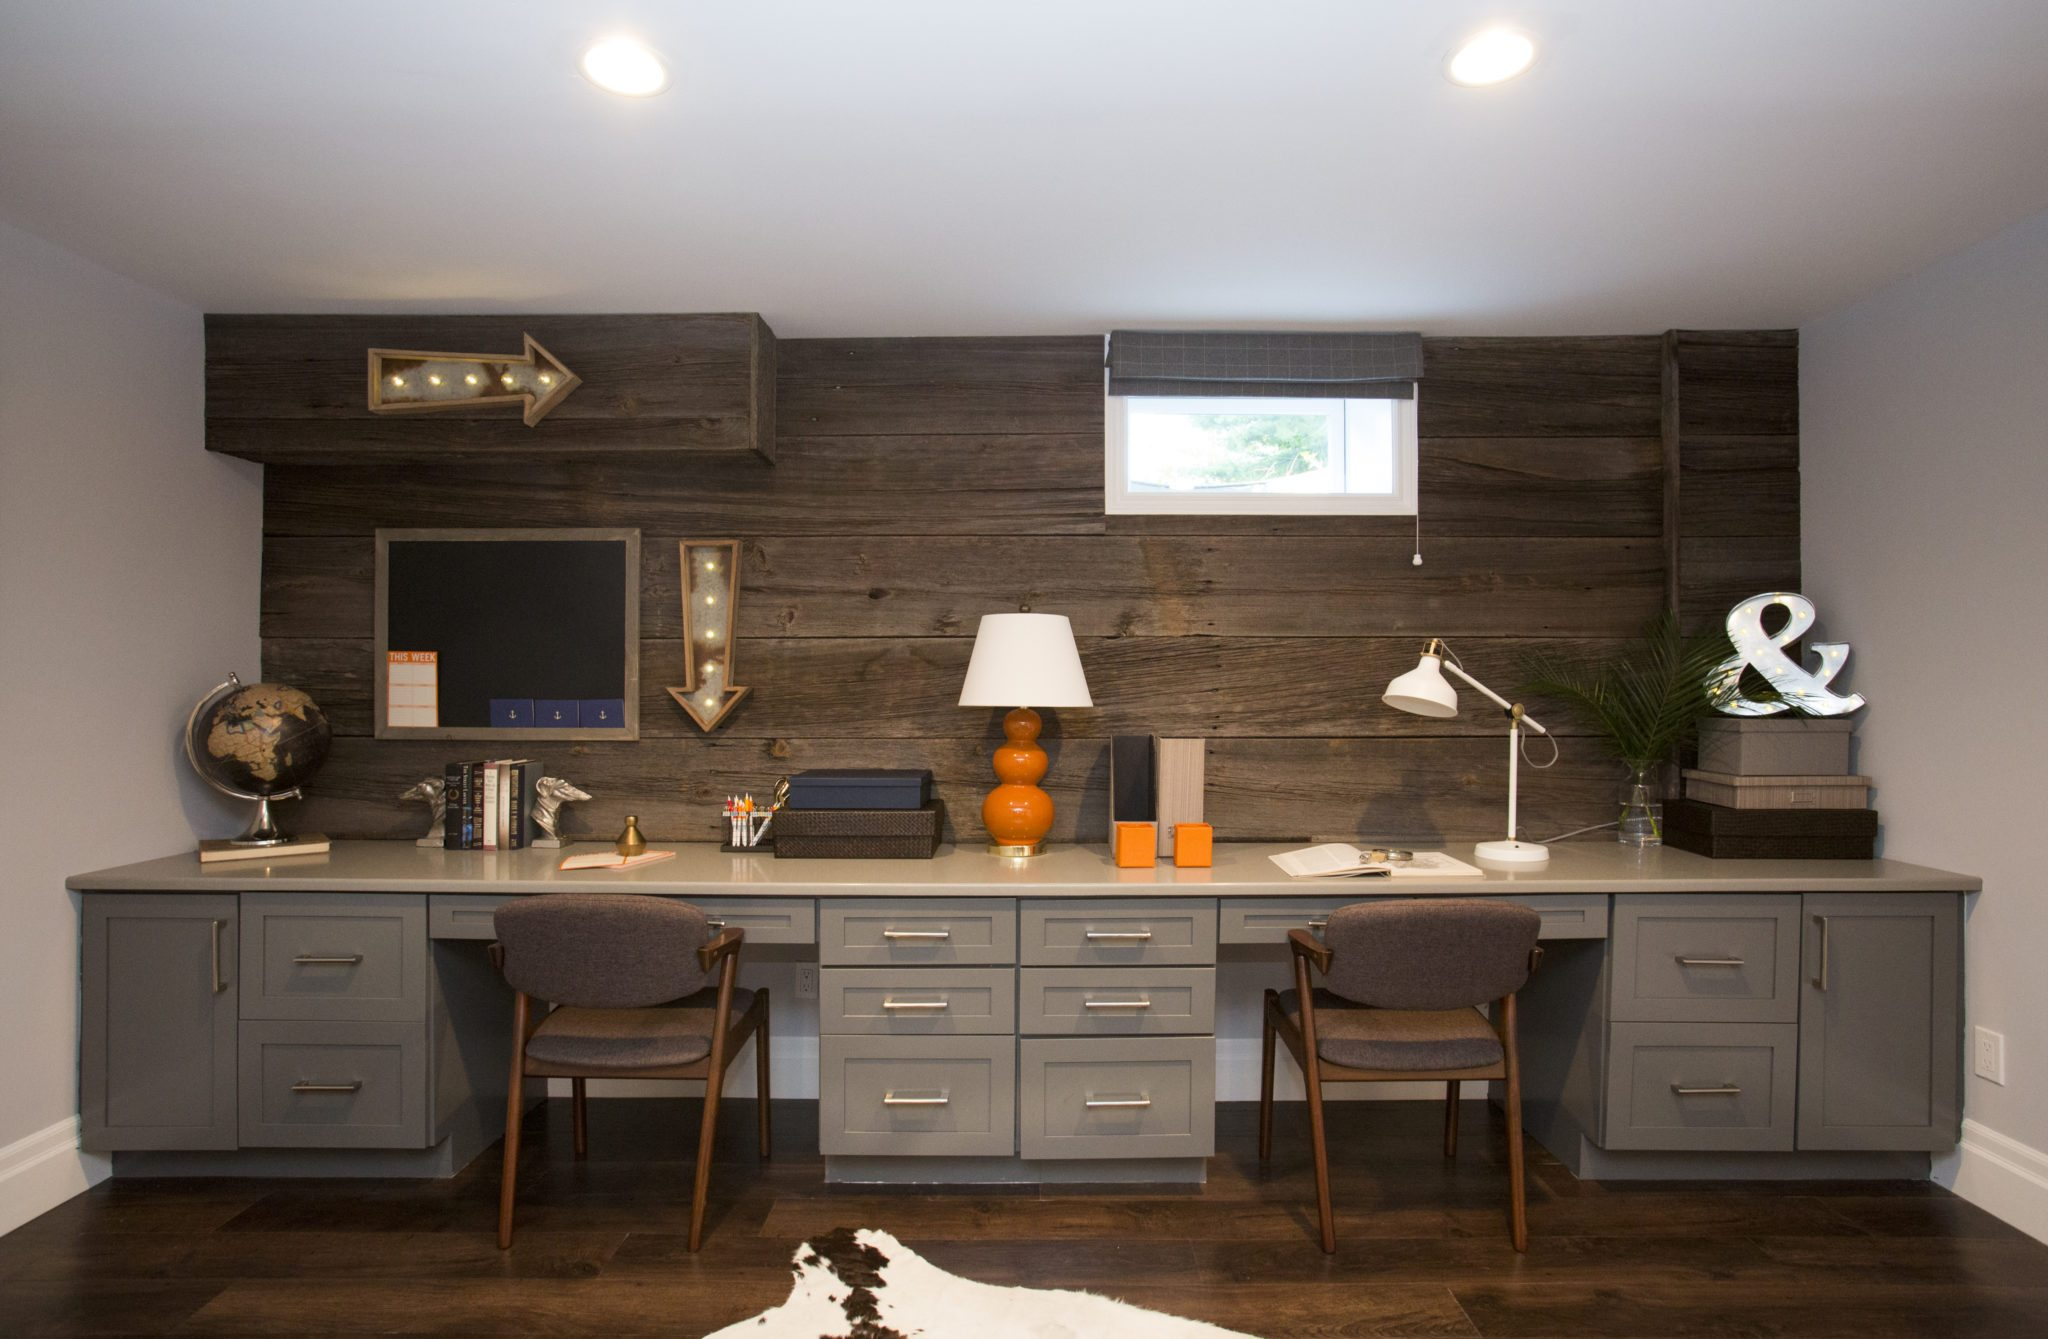 Basement - After 6: After the renovation, the basement in Charlie and Renee Mattiello's current home in Katonah, New York, is a combination office and entertaining space. Along one wall is a double desk, and a cozy seating area complete with a bar tray is staged on the other side of the room, as seen on Buying & Selling. (After)